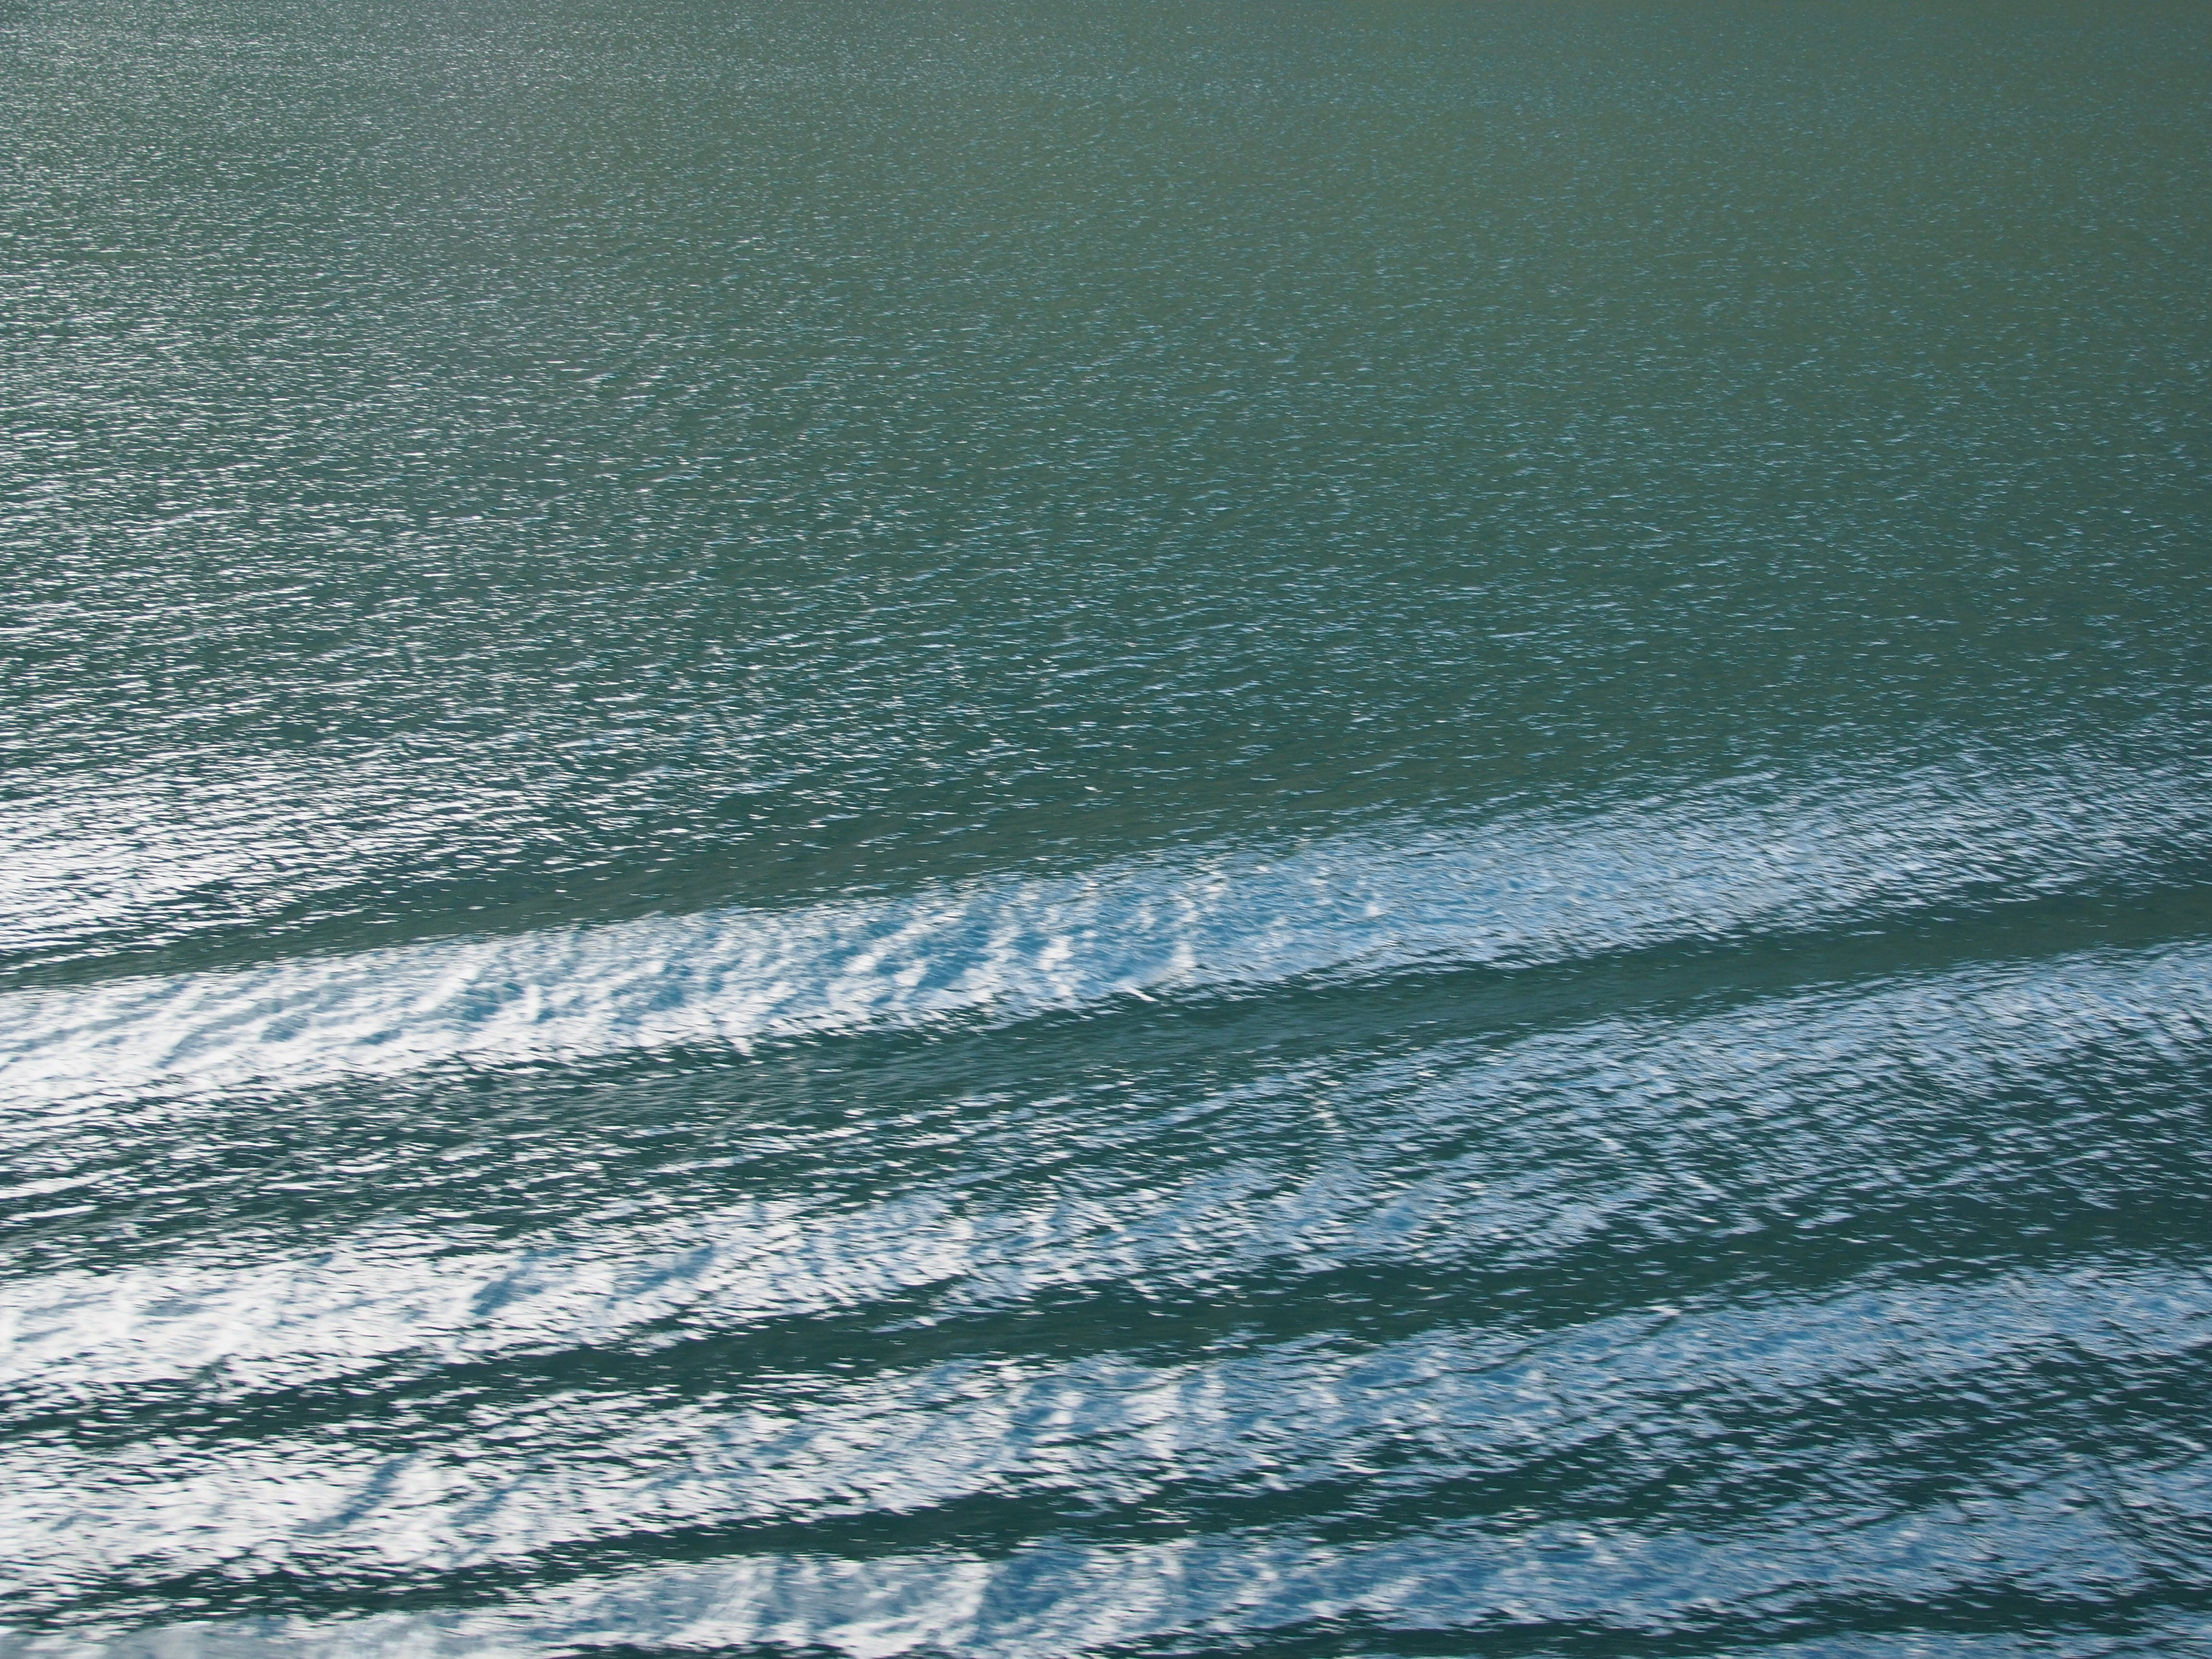 Free stock photo of sea, water, waves